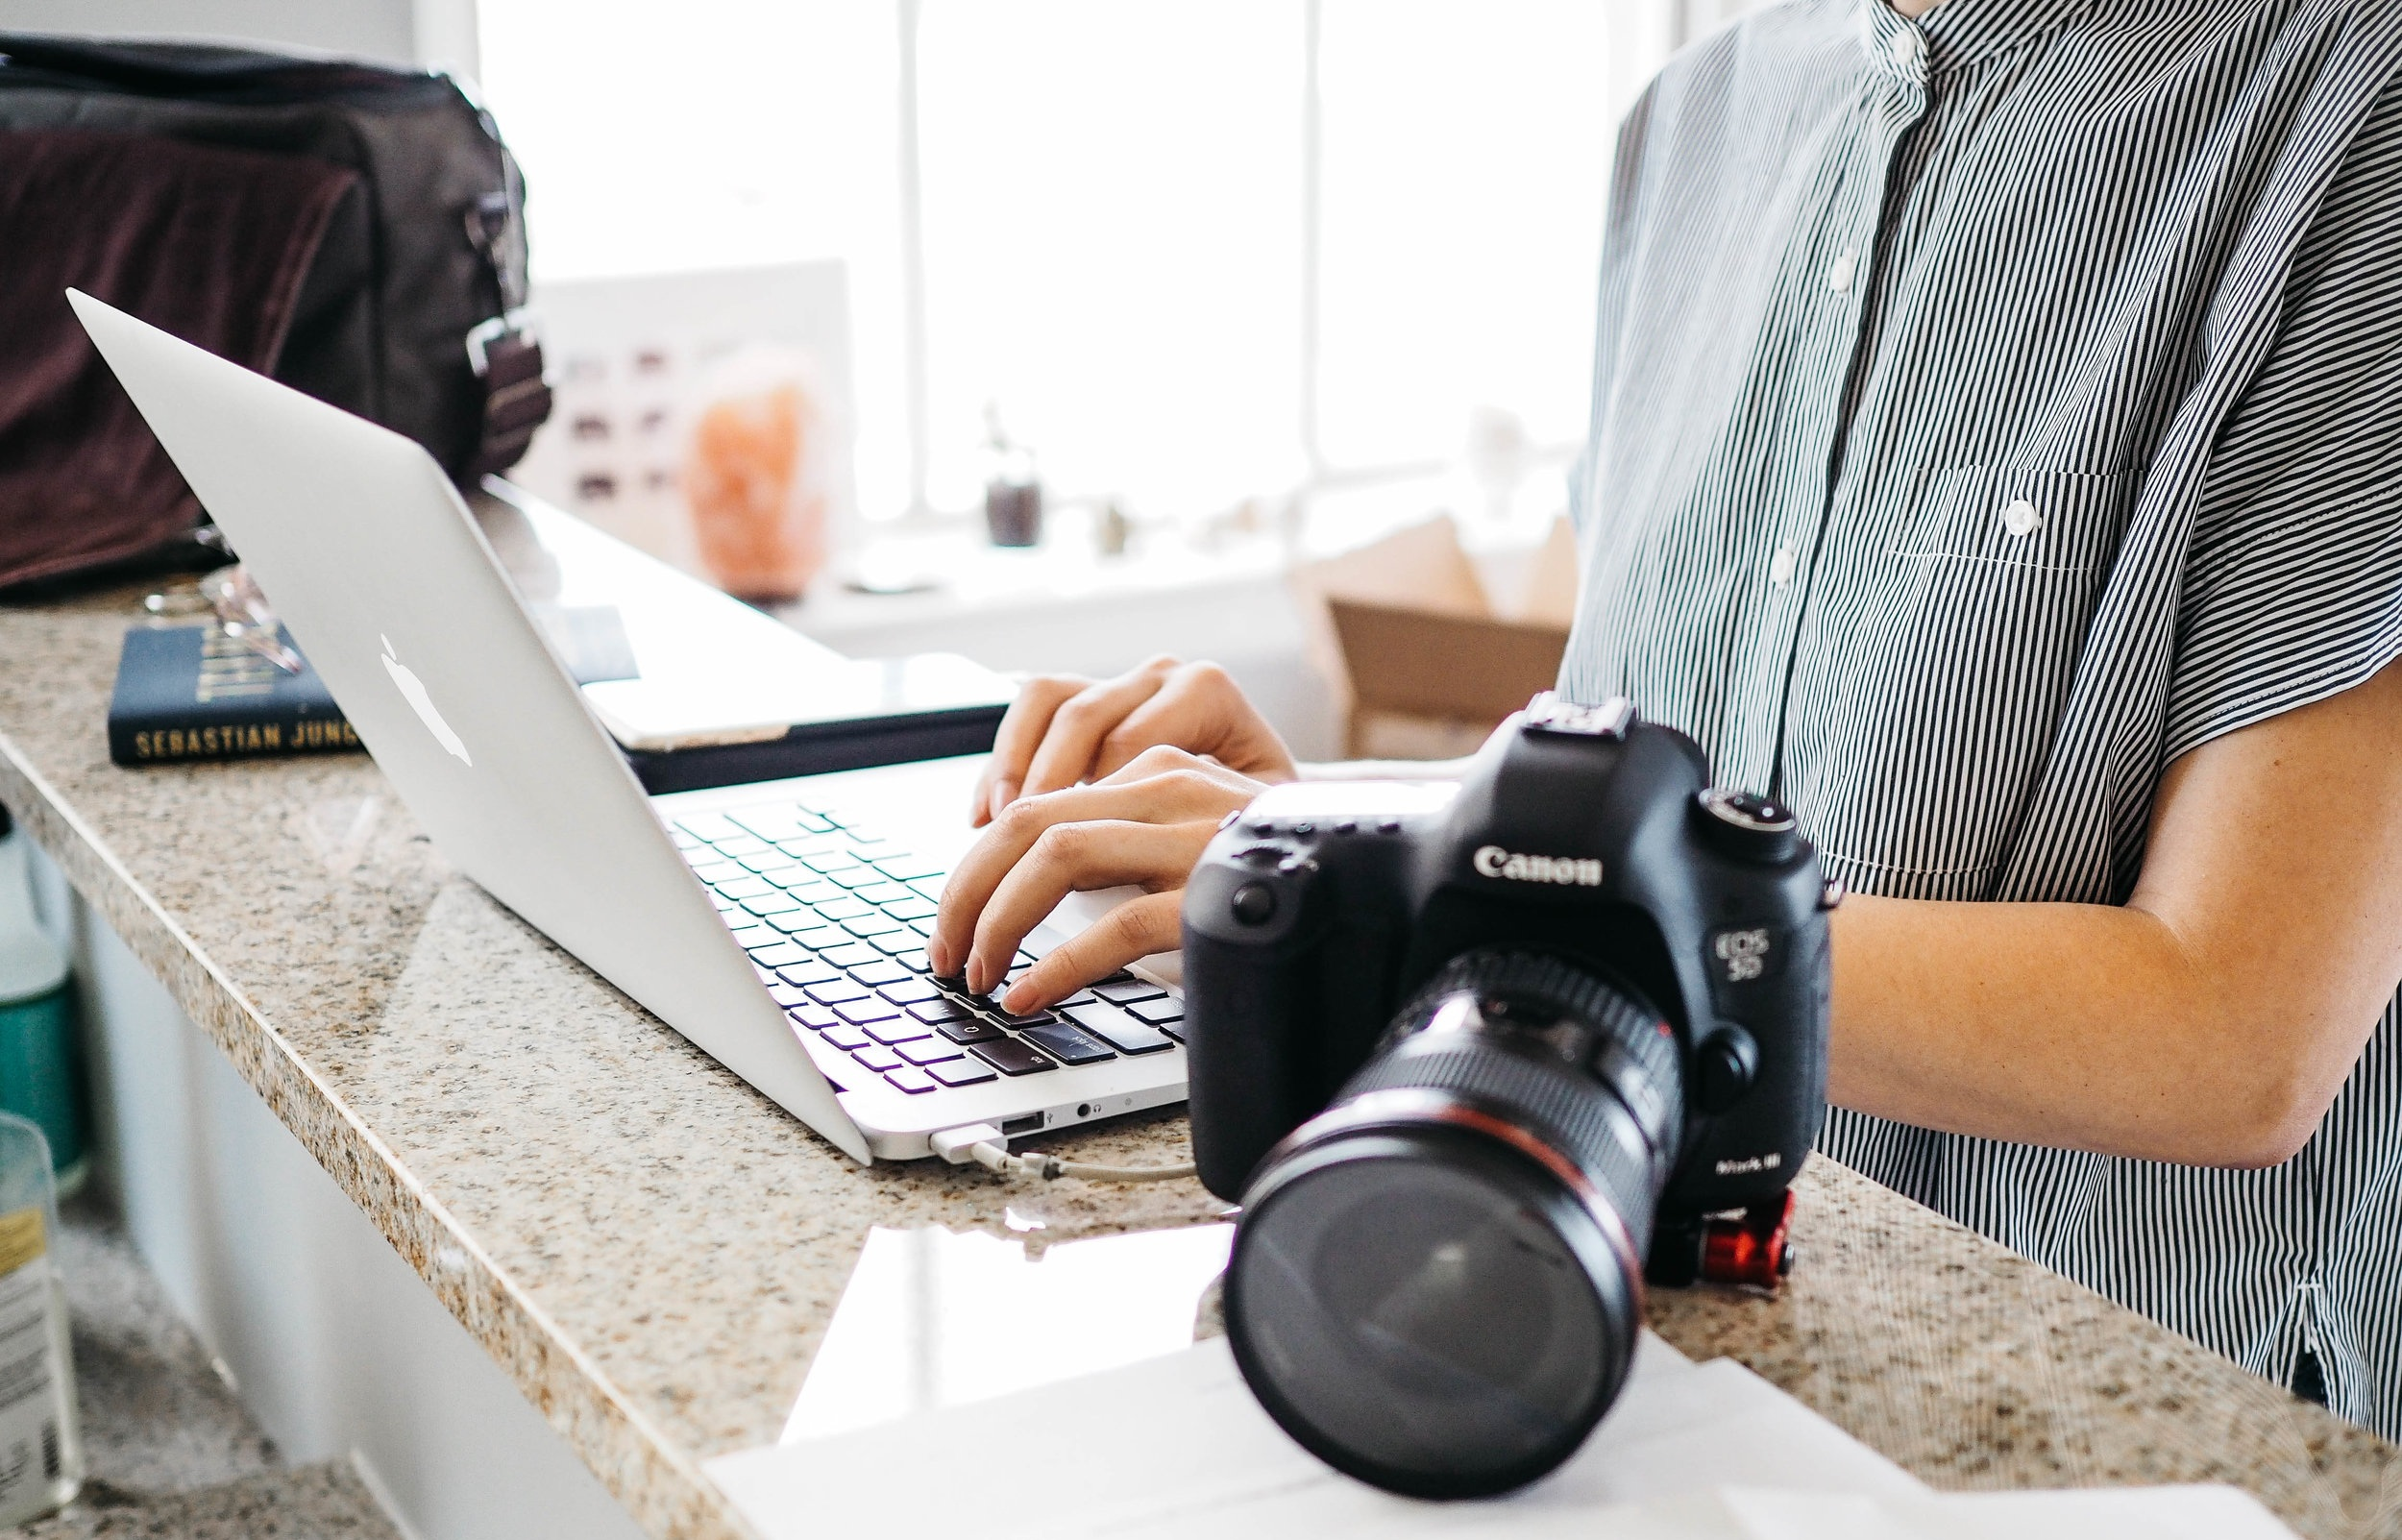 Step 2 – Your content - Your website will have to have content (text and images) relevant to your business. Usually we simply take the content off your existing website very easily, or you can provide us with new content that is suitable to your business.